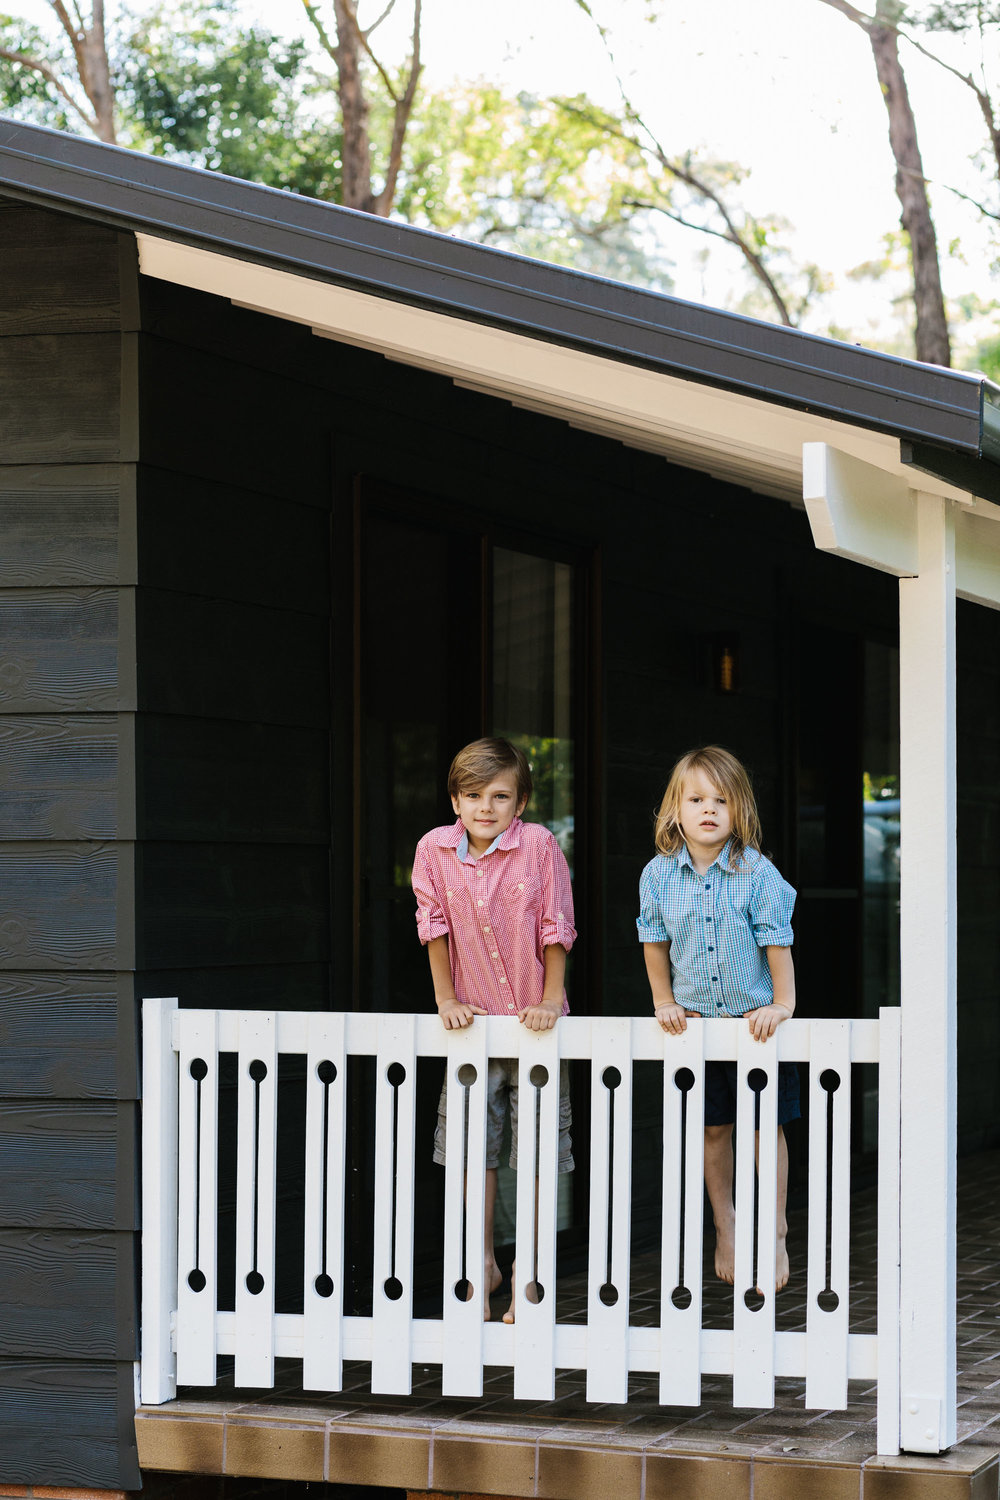 Brooklet House for Country Style. Photo: Marnie Hawson